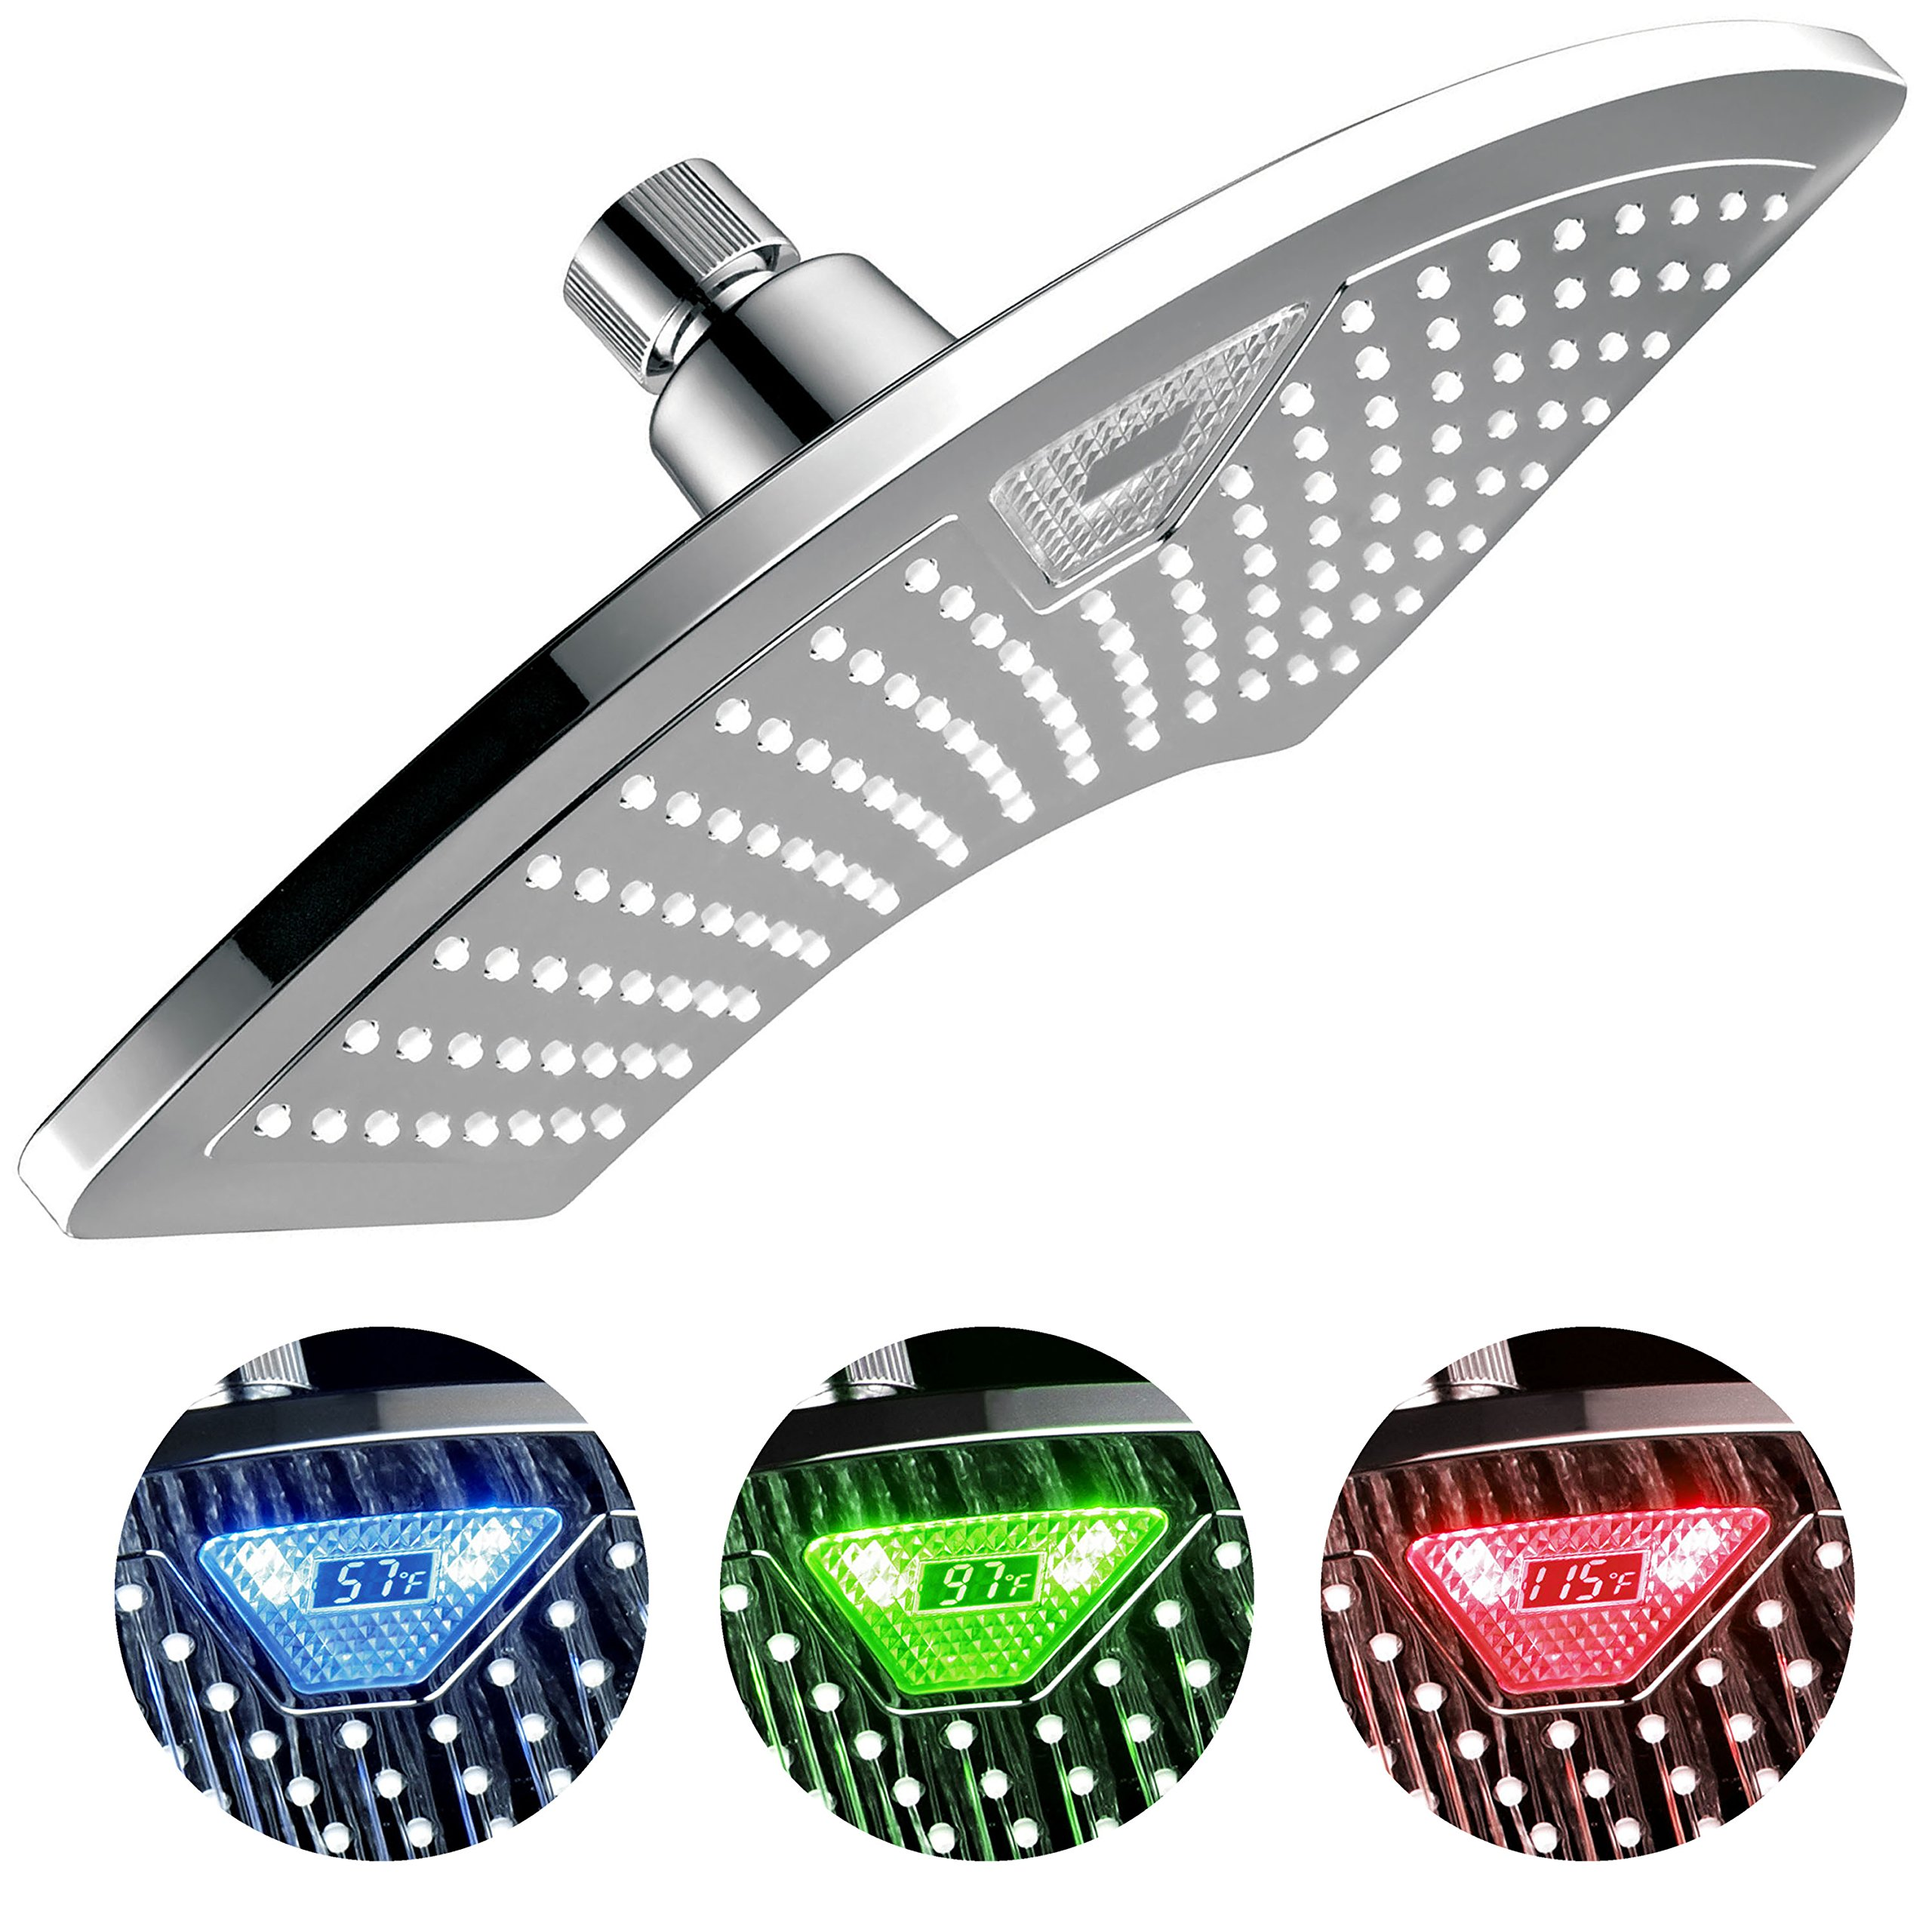 DreamSpa 1489 Aquafan 12 Inch Rainfall Shower-Head with Color-Changing LED/LCD Temperature Display, 12'', Chrome